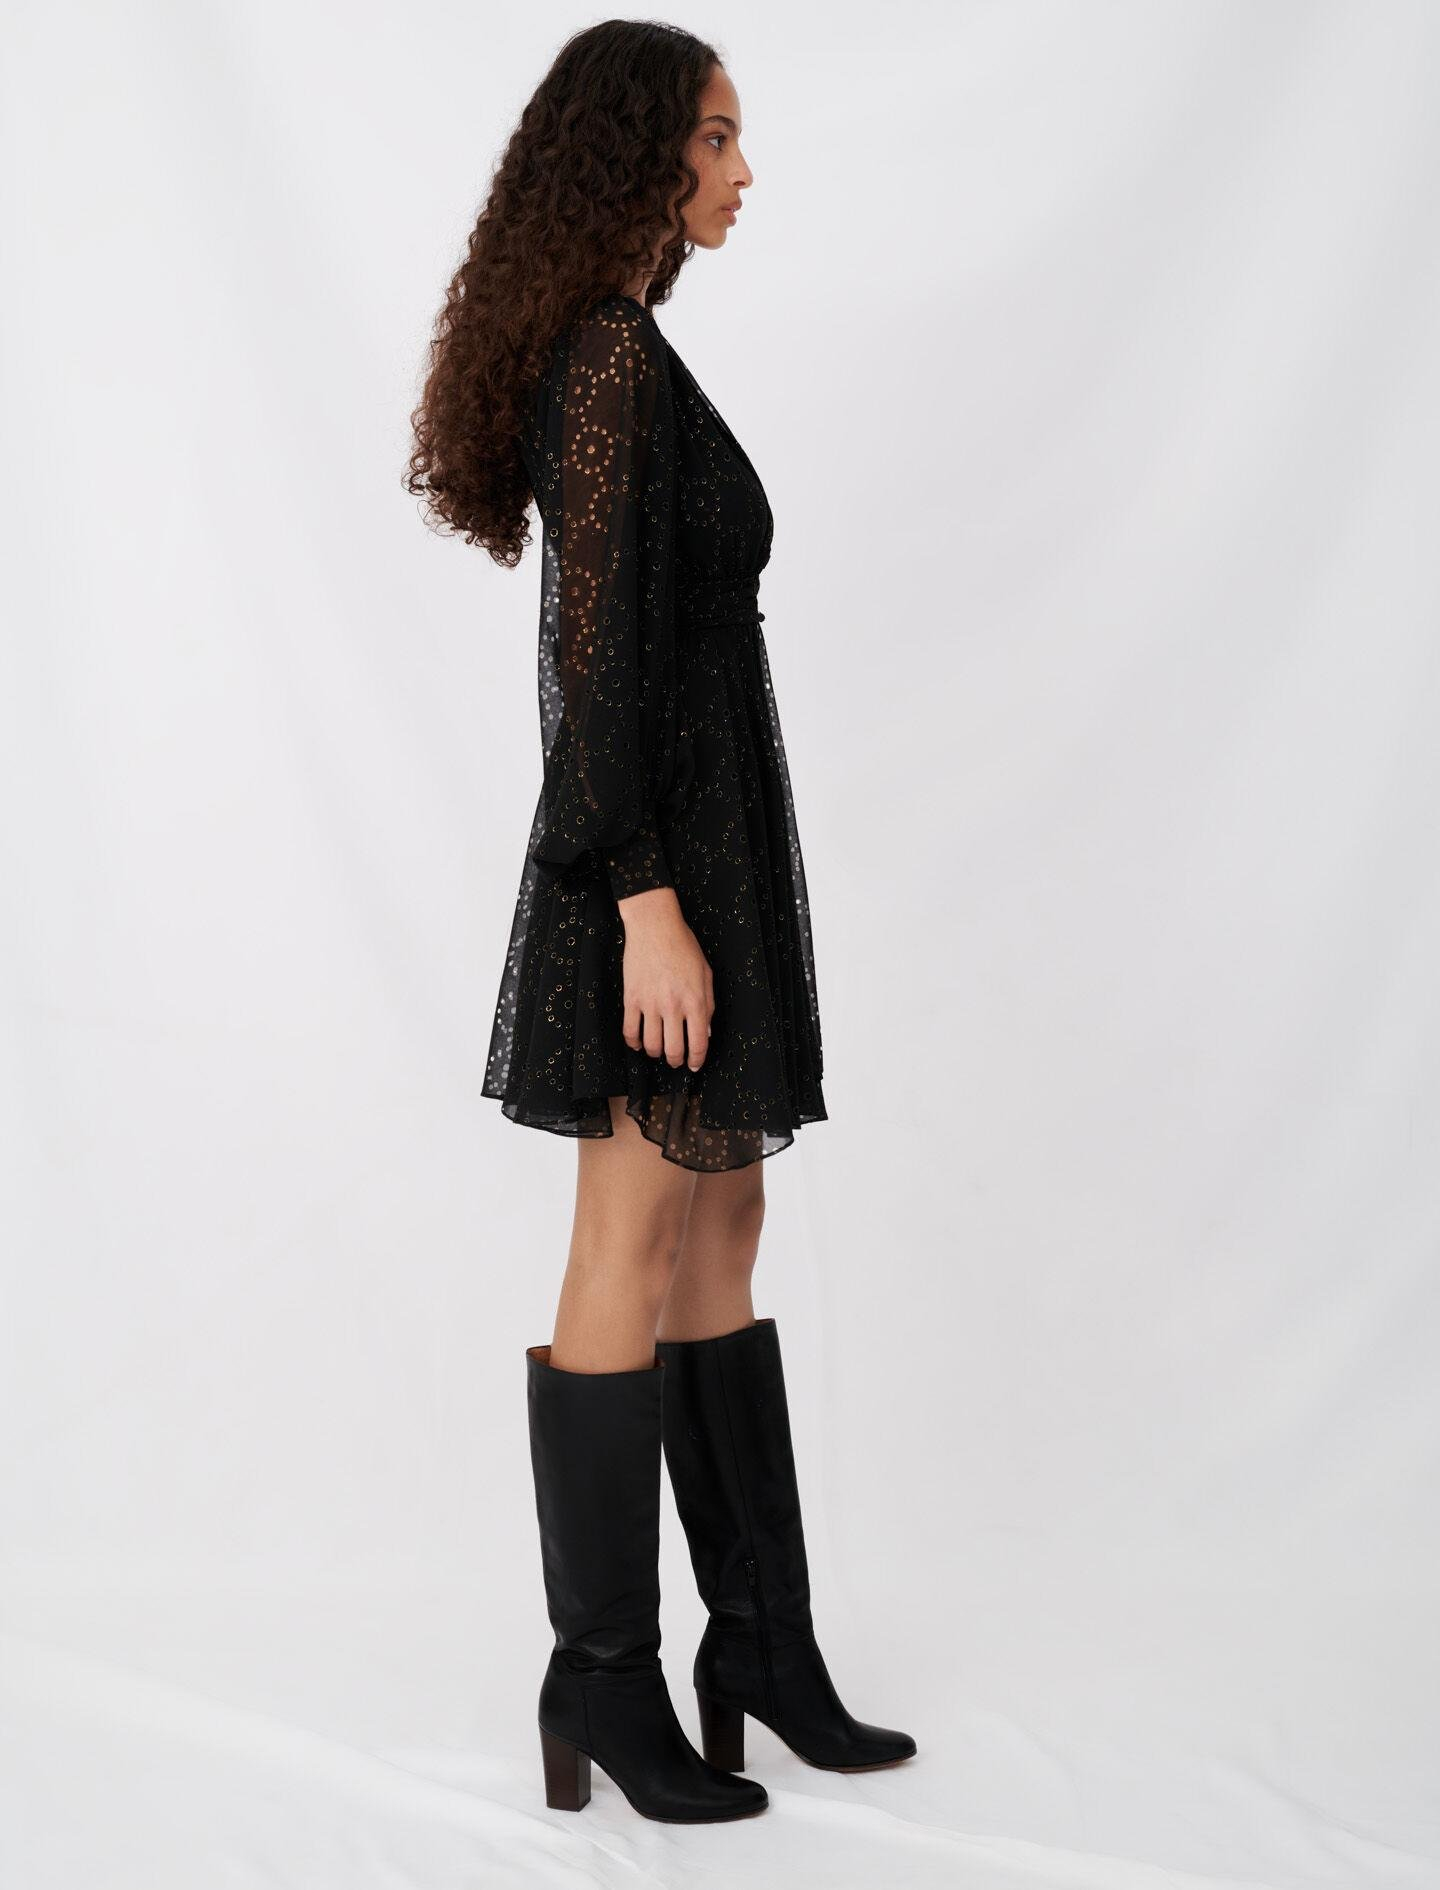 HEELED SMOOTH LEATHER BOOTS 3